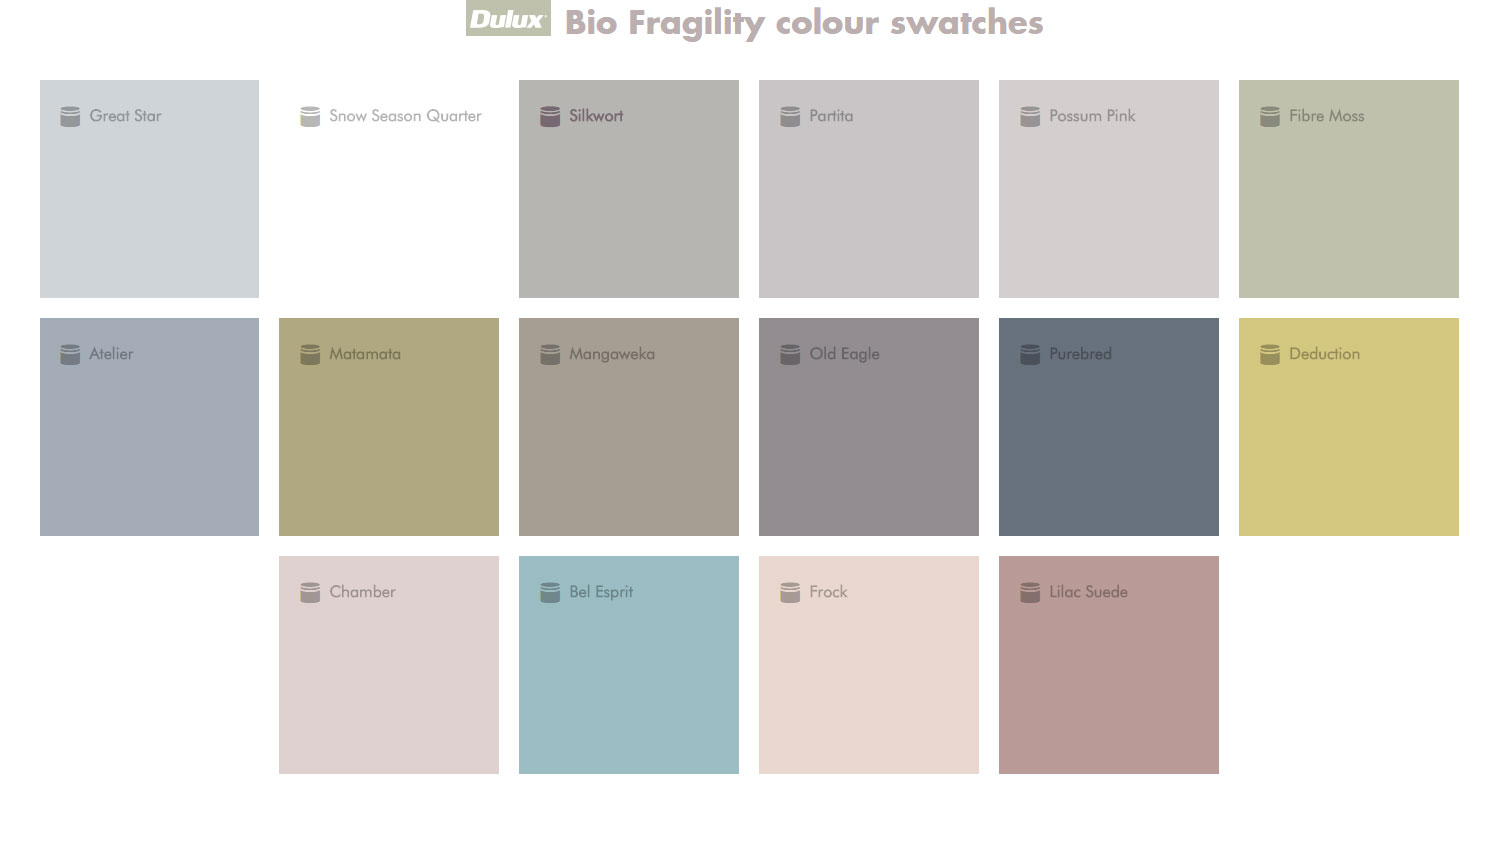 dulux colour forecast 2016 bio fragility interiors by. Black Bedroom Furniture Sets. Home Design Ideas